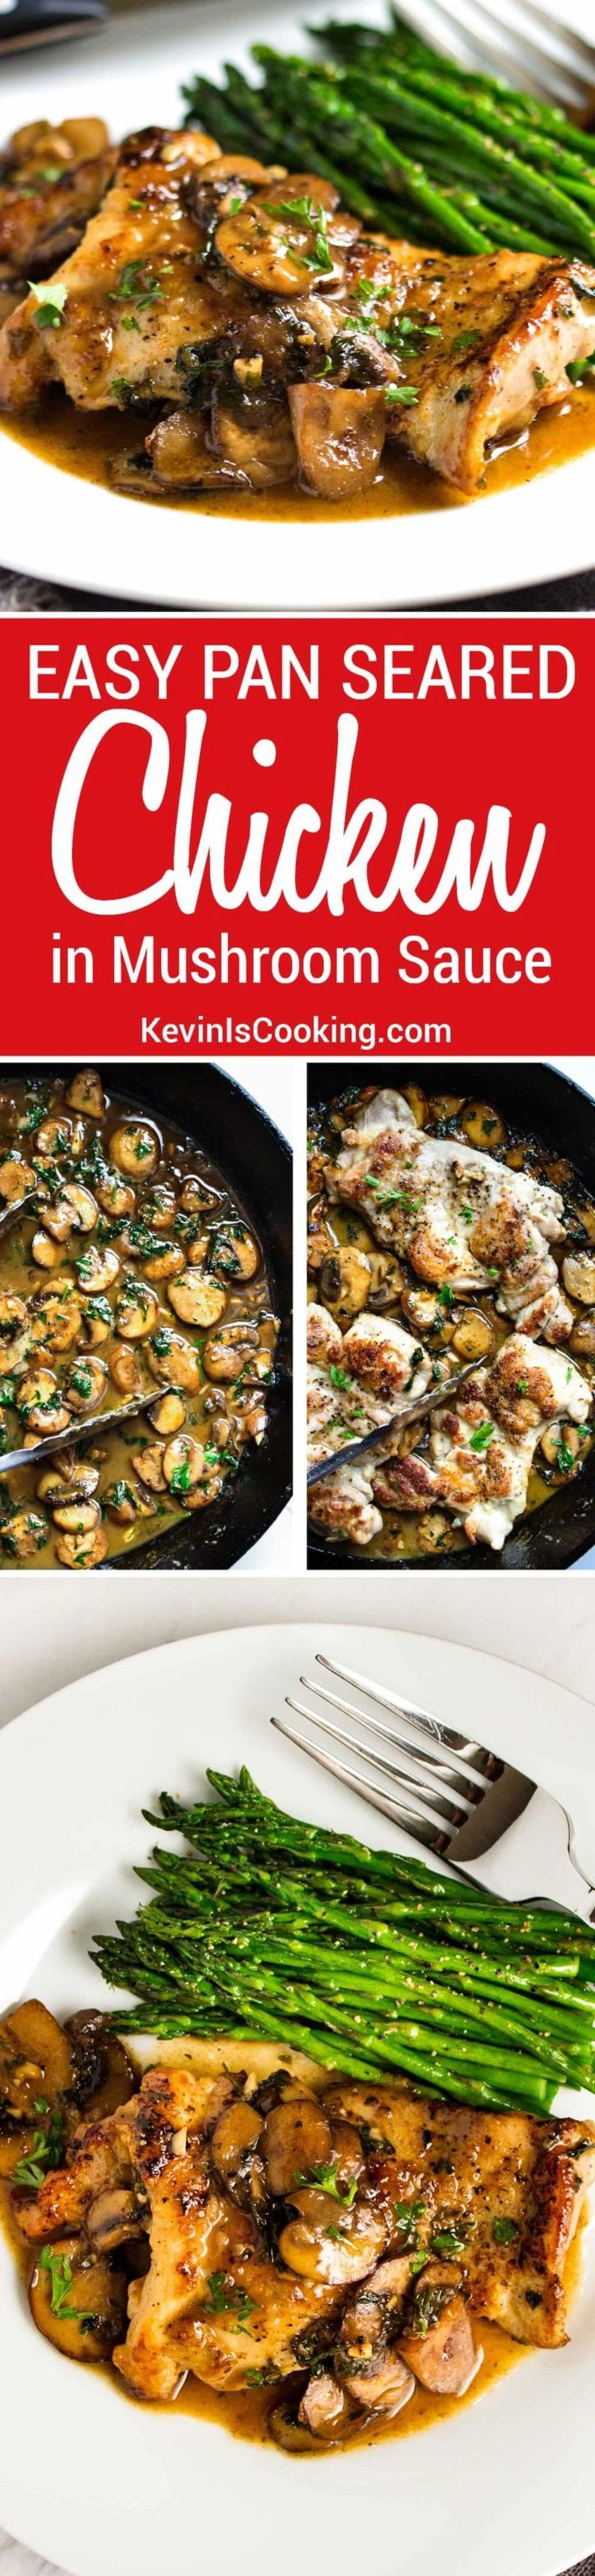 This Quick Pan Seared Chicken with Mushrooms uses chicken thighs, is smothered in a luscious, lemony mushroom pan sauce and is on the table in 30 minutes. via @keviniscooking